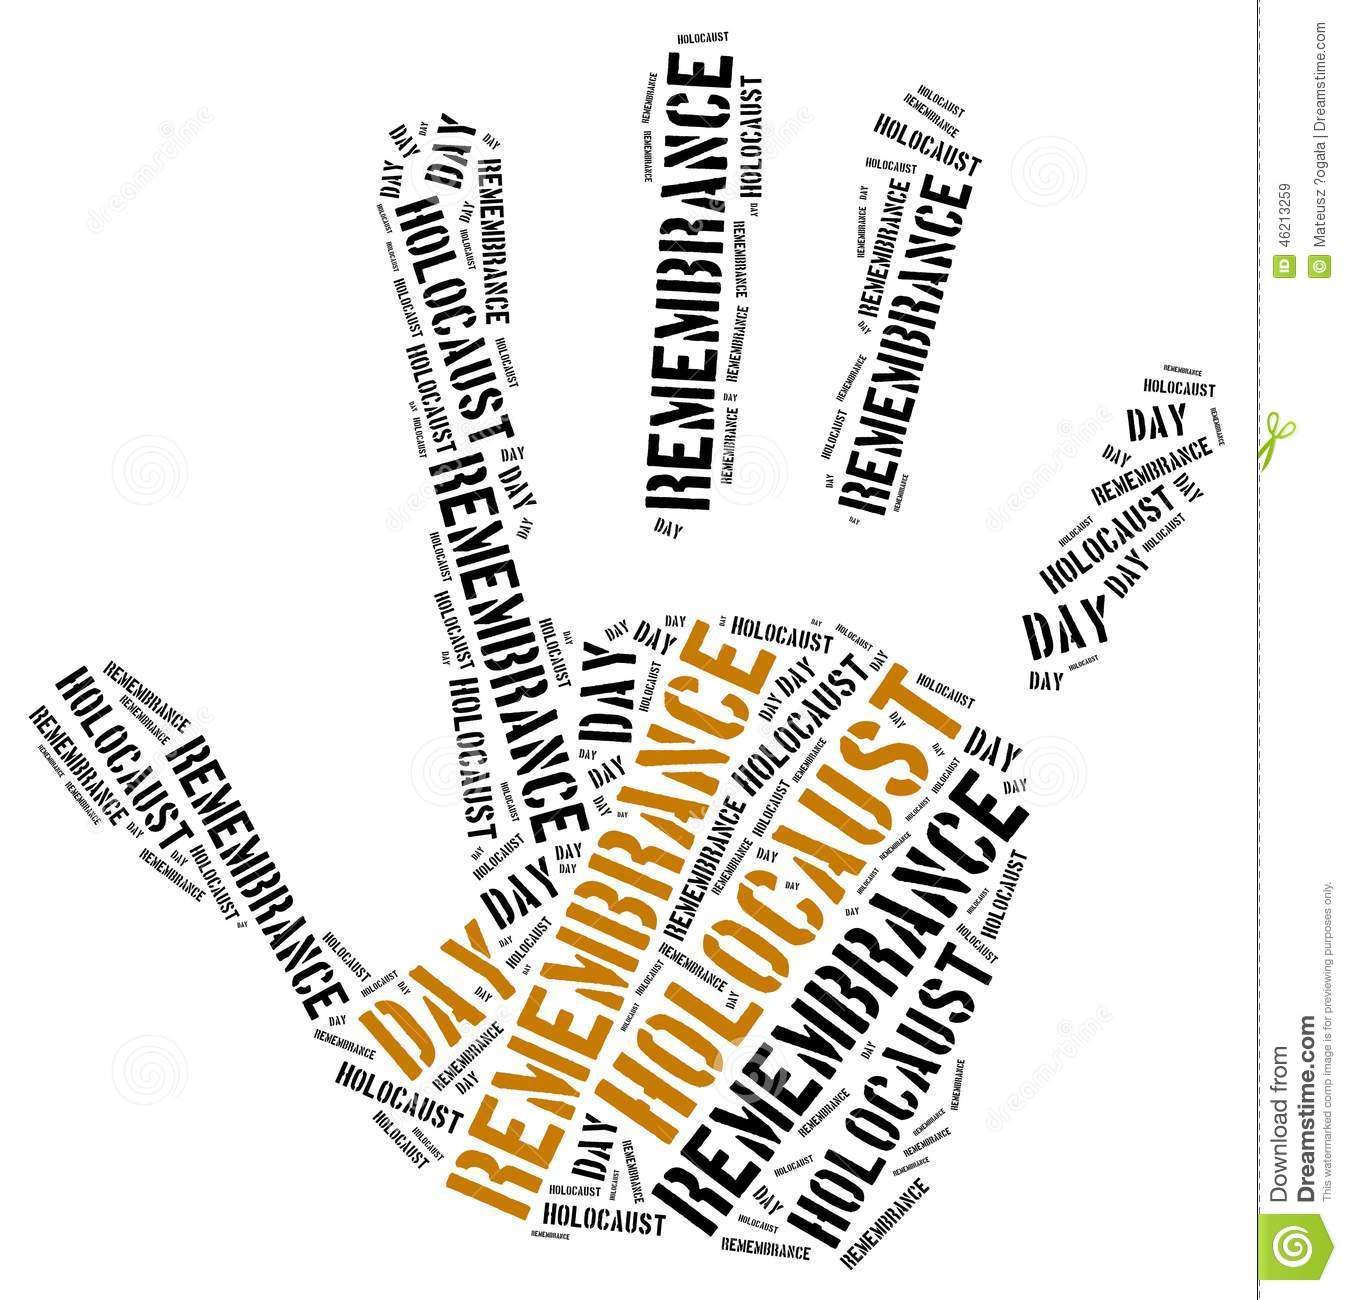 Holocaust remembrance day clipart.